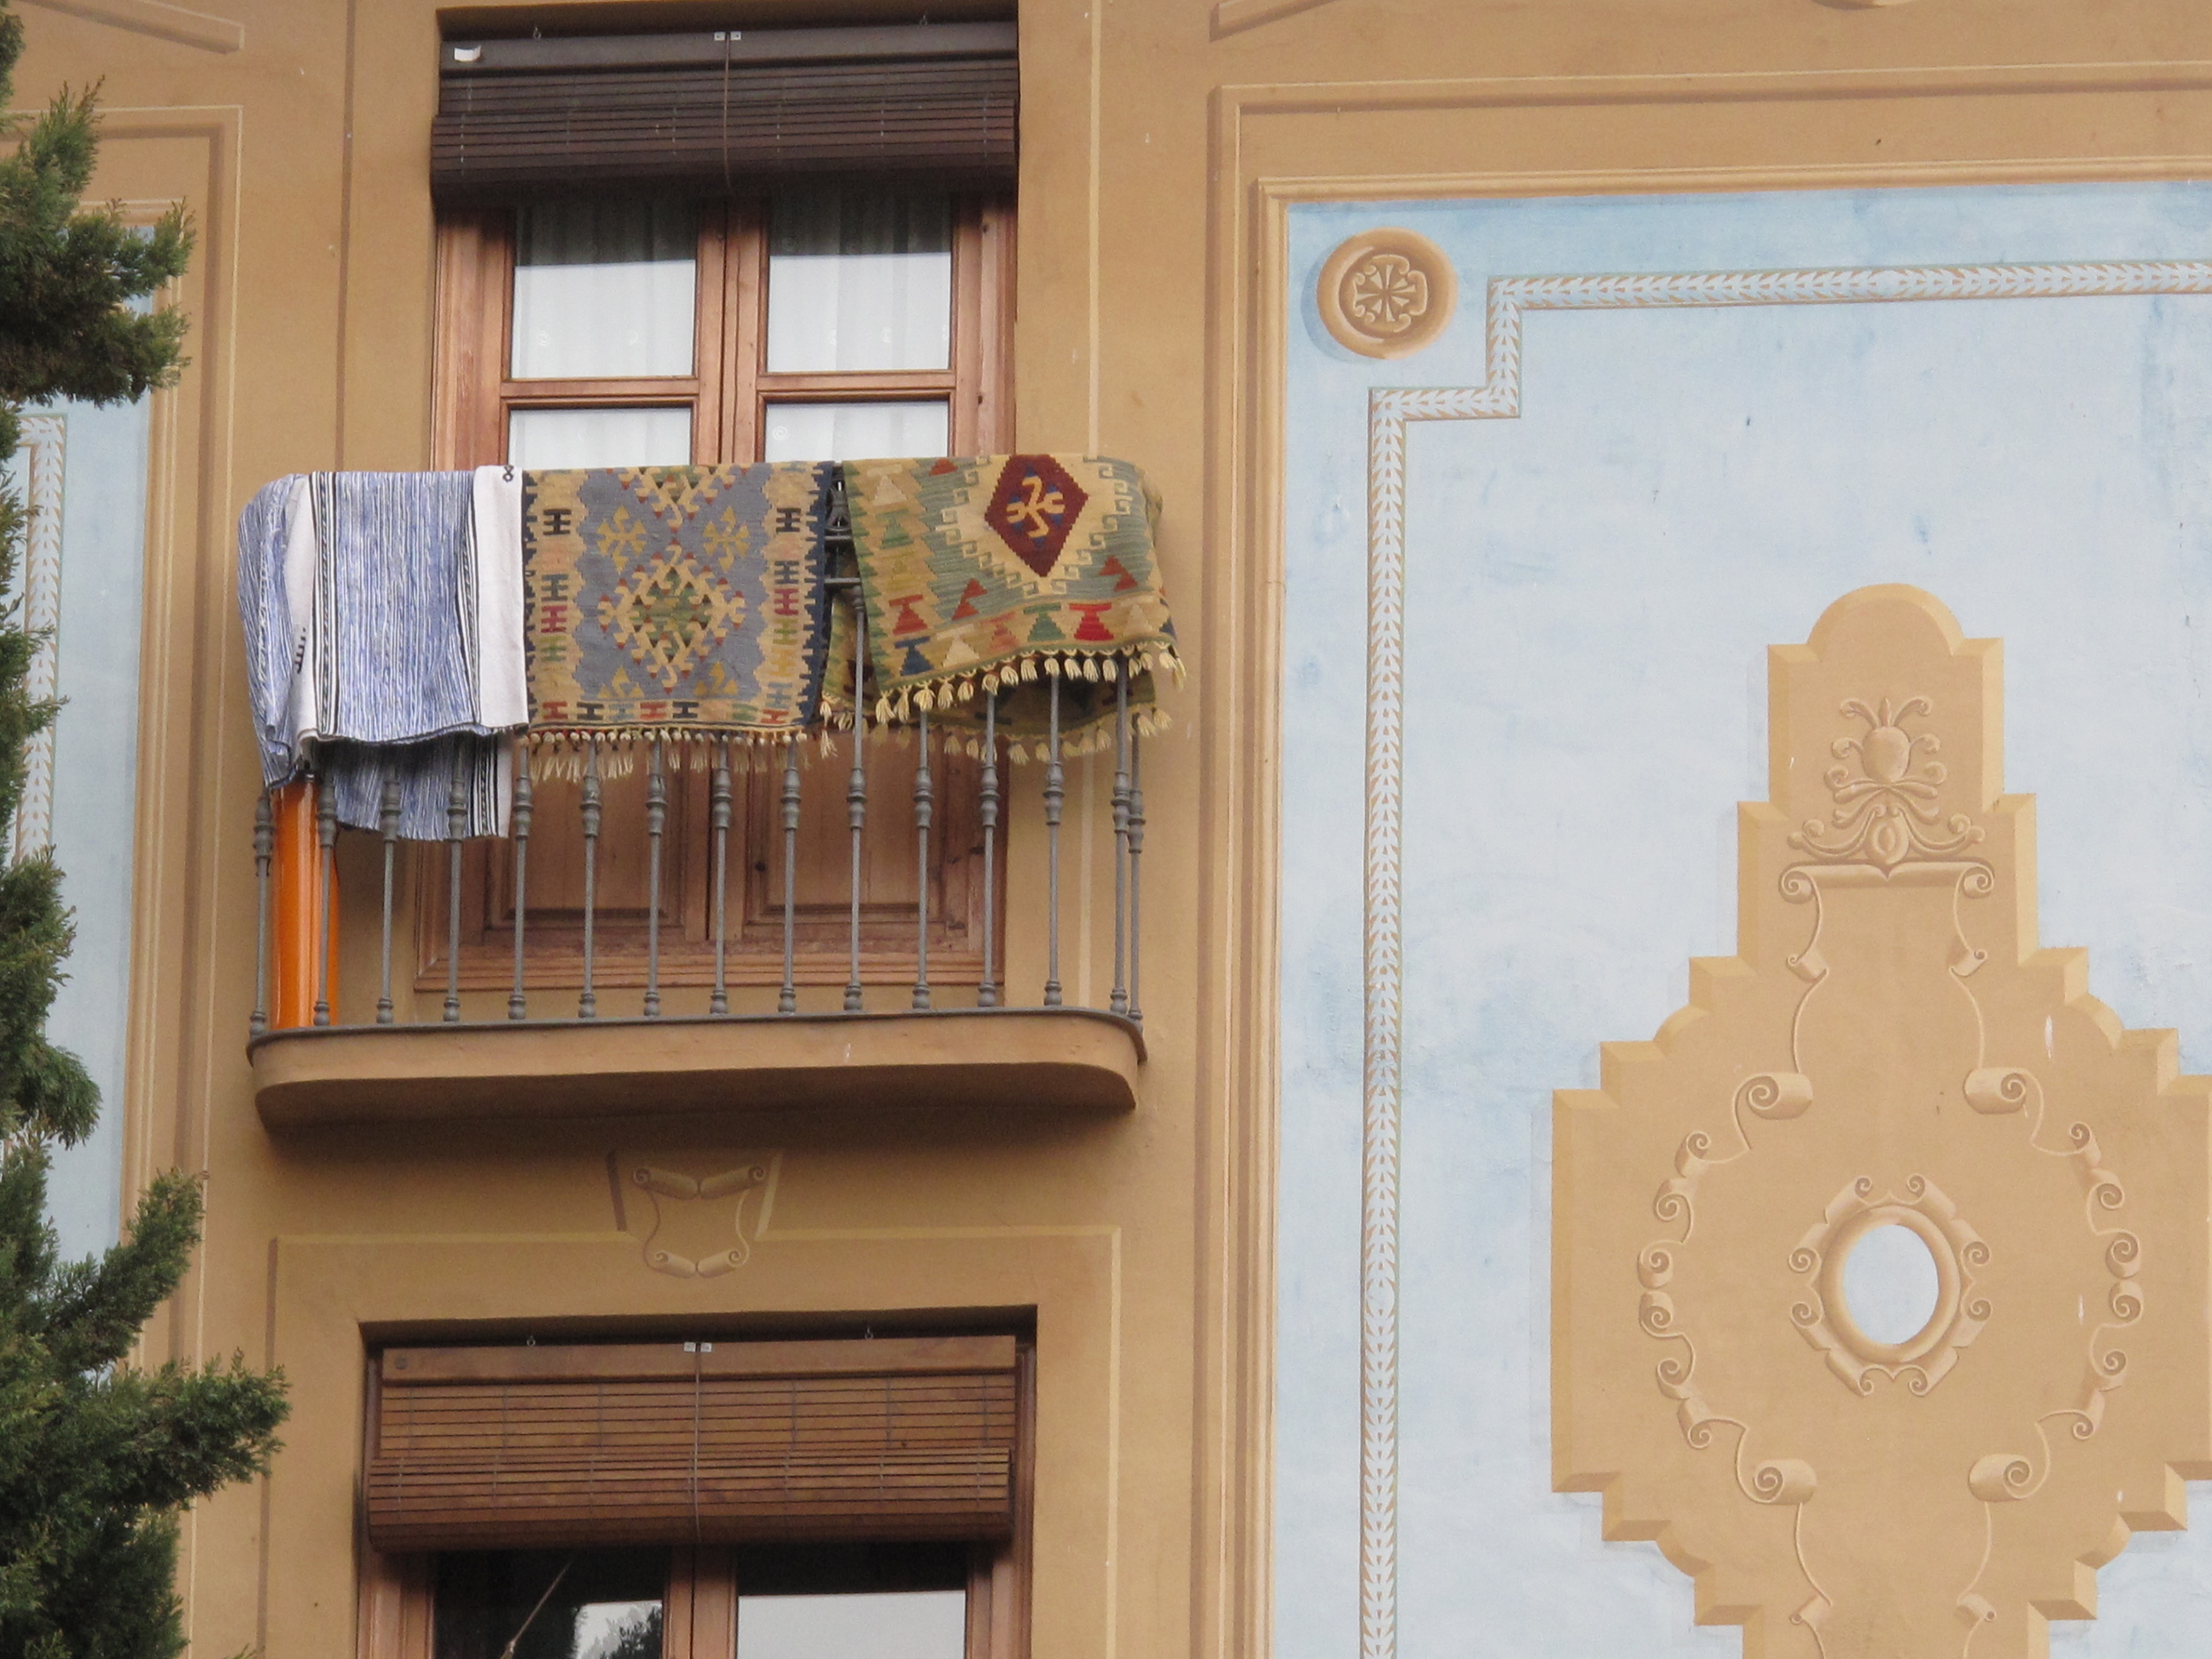 Carpets hanging on a balcony in Granada